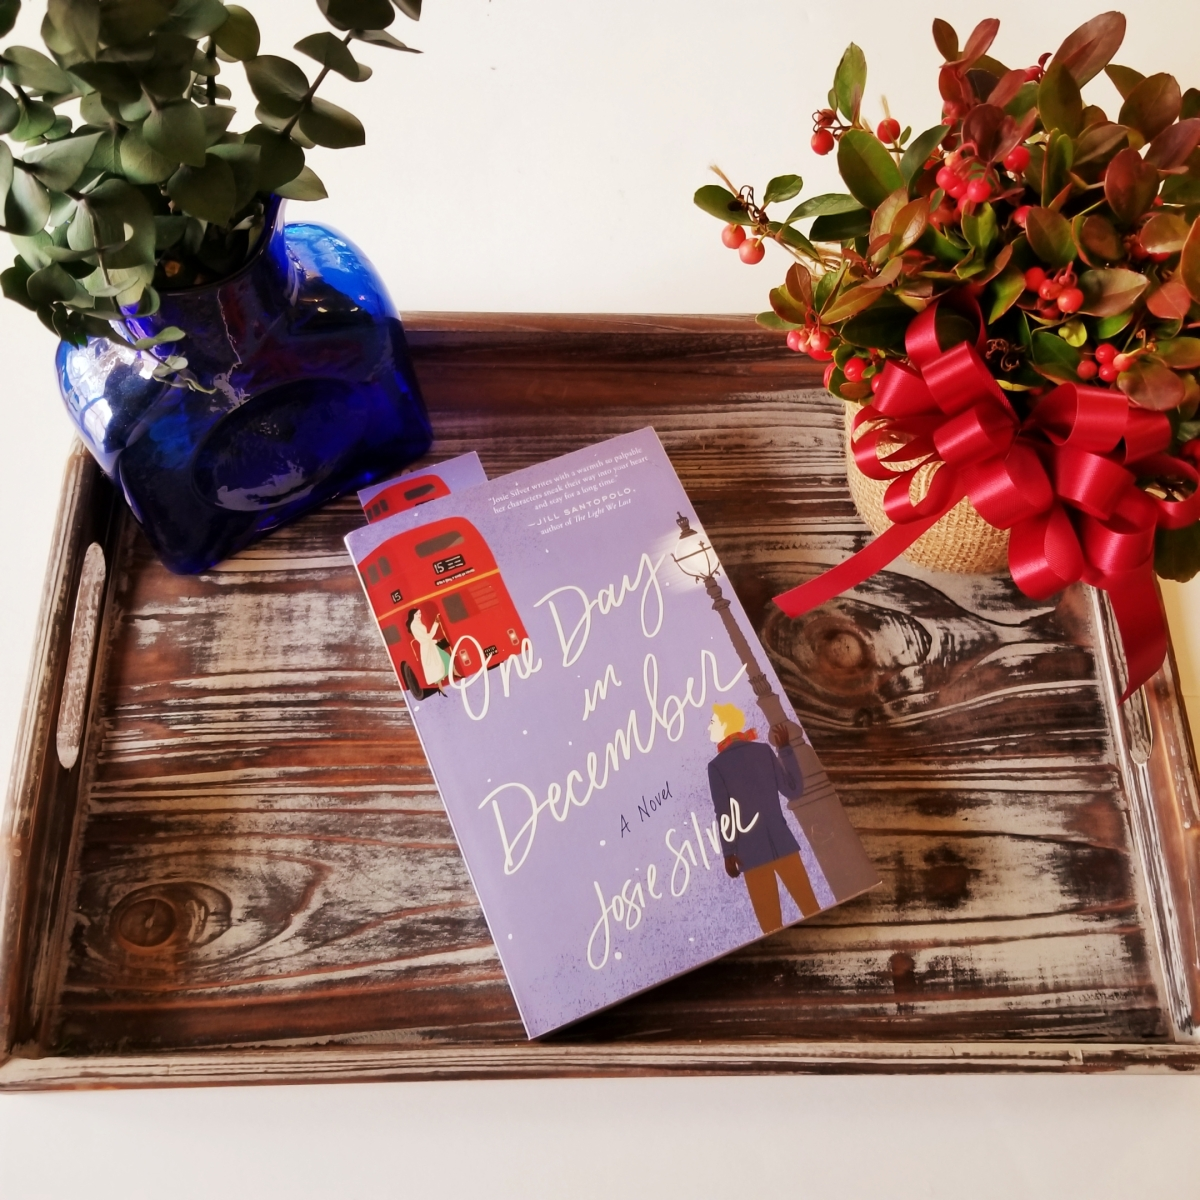 One Day in December by Josie Silver #bookreview #tarheelreader #thronedecember @josiesilver_ @crownpublishing @penguinrandom #onedayindecember #6bookbestiesonedayindecember #6bookbestieapproved #goodreads #bookclub